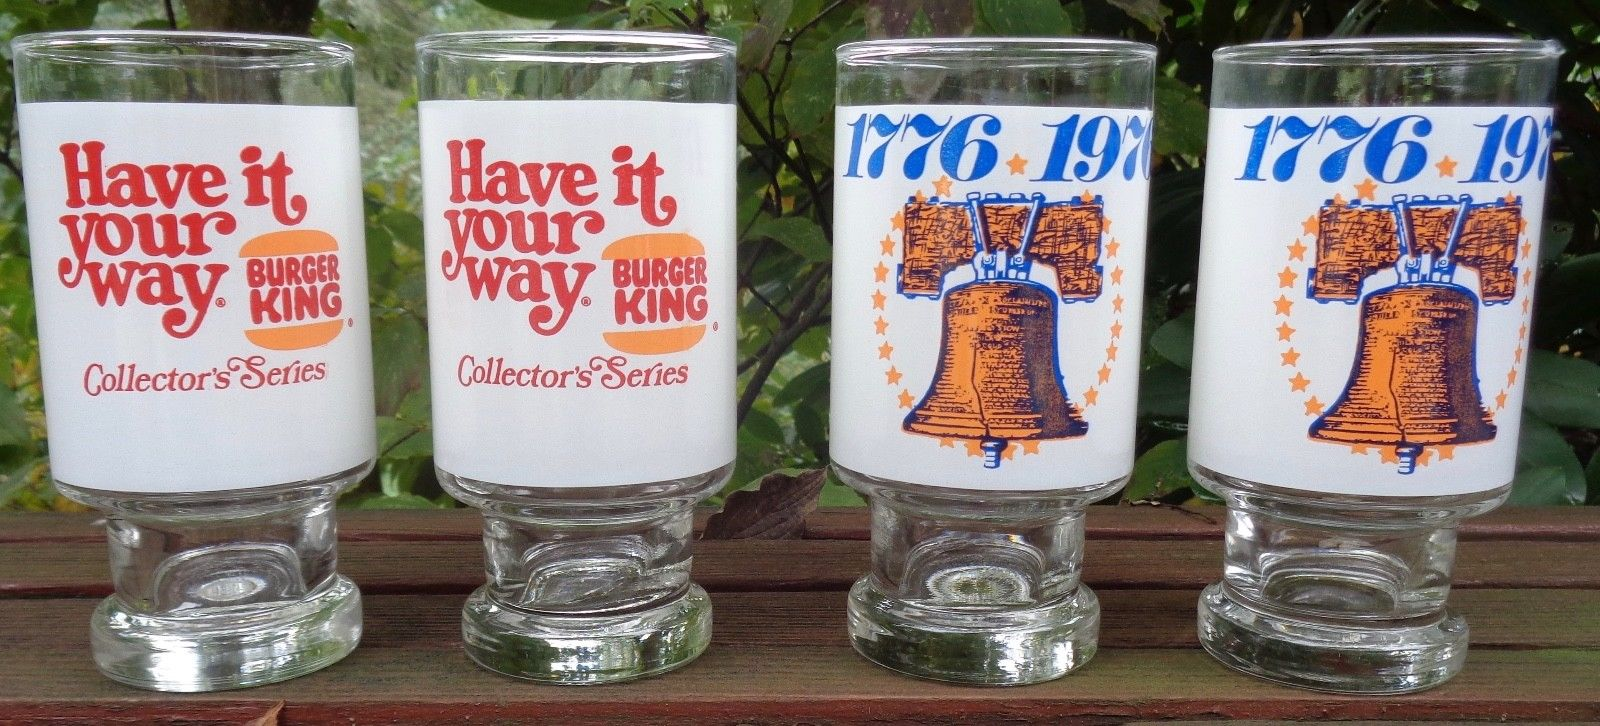 These collectible Burger King glasses are currently fetching prices on eBay that would cover one-third of the current cost of a Whopper combo meal. Image provided by eBay